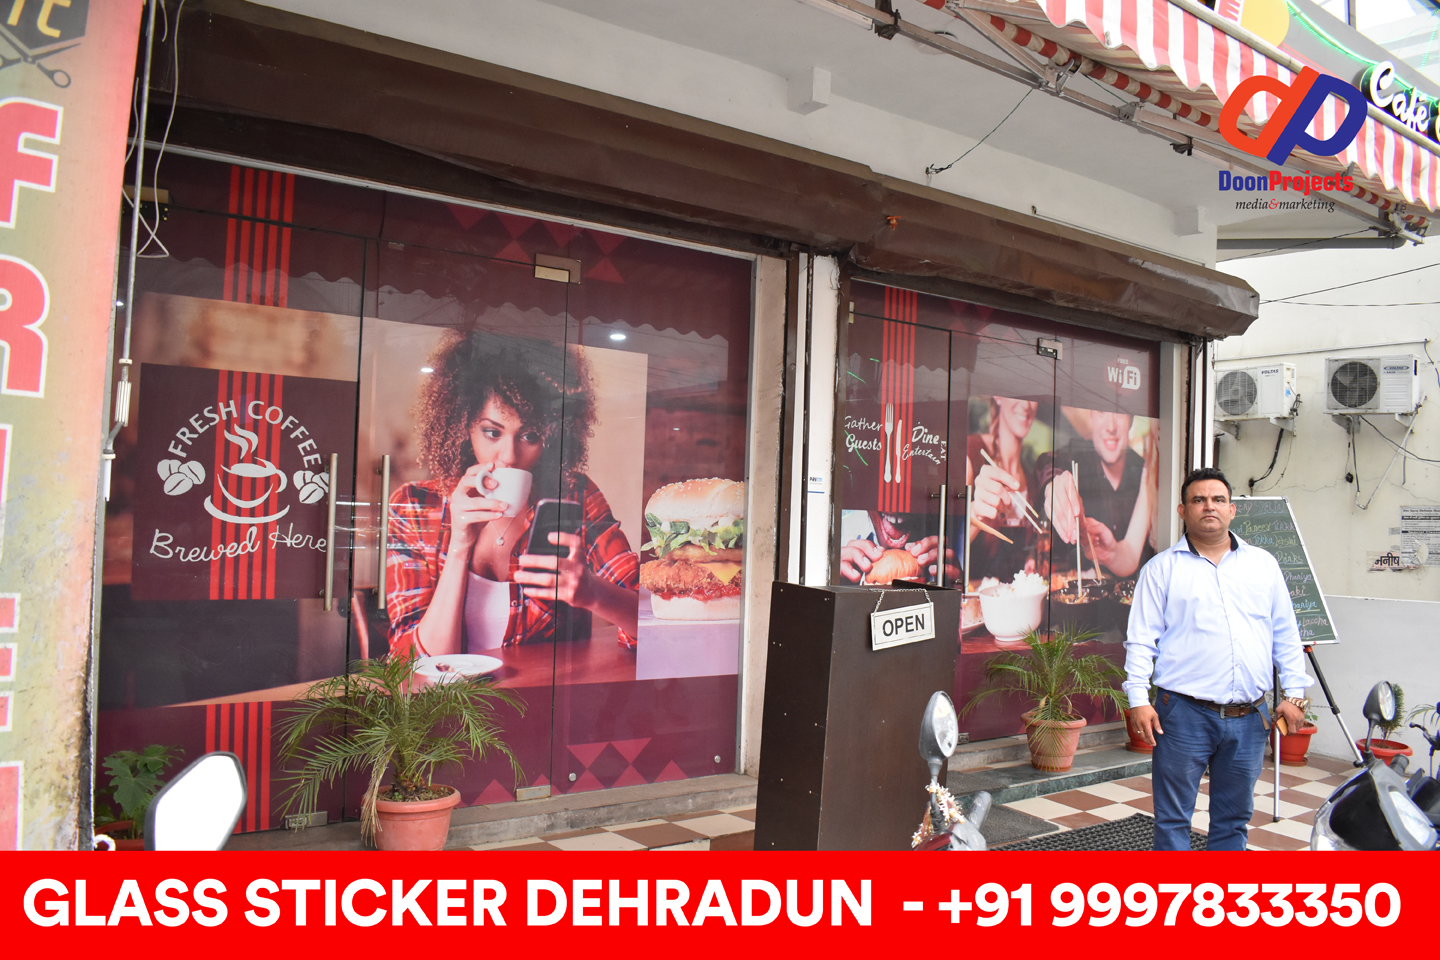 See Through Glass Sticker Designed and Pasted on Dehradun Based Restaurant located at Hathibarkala